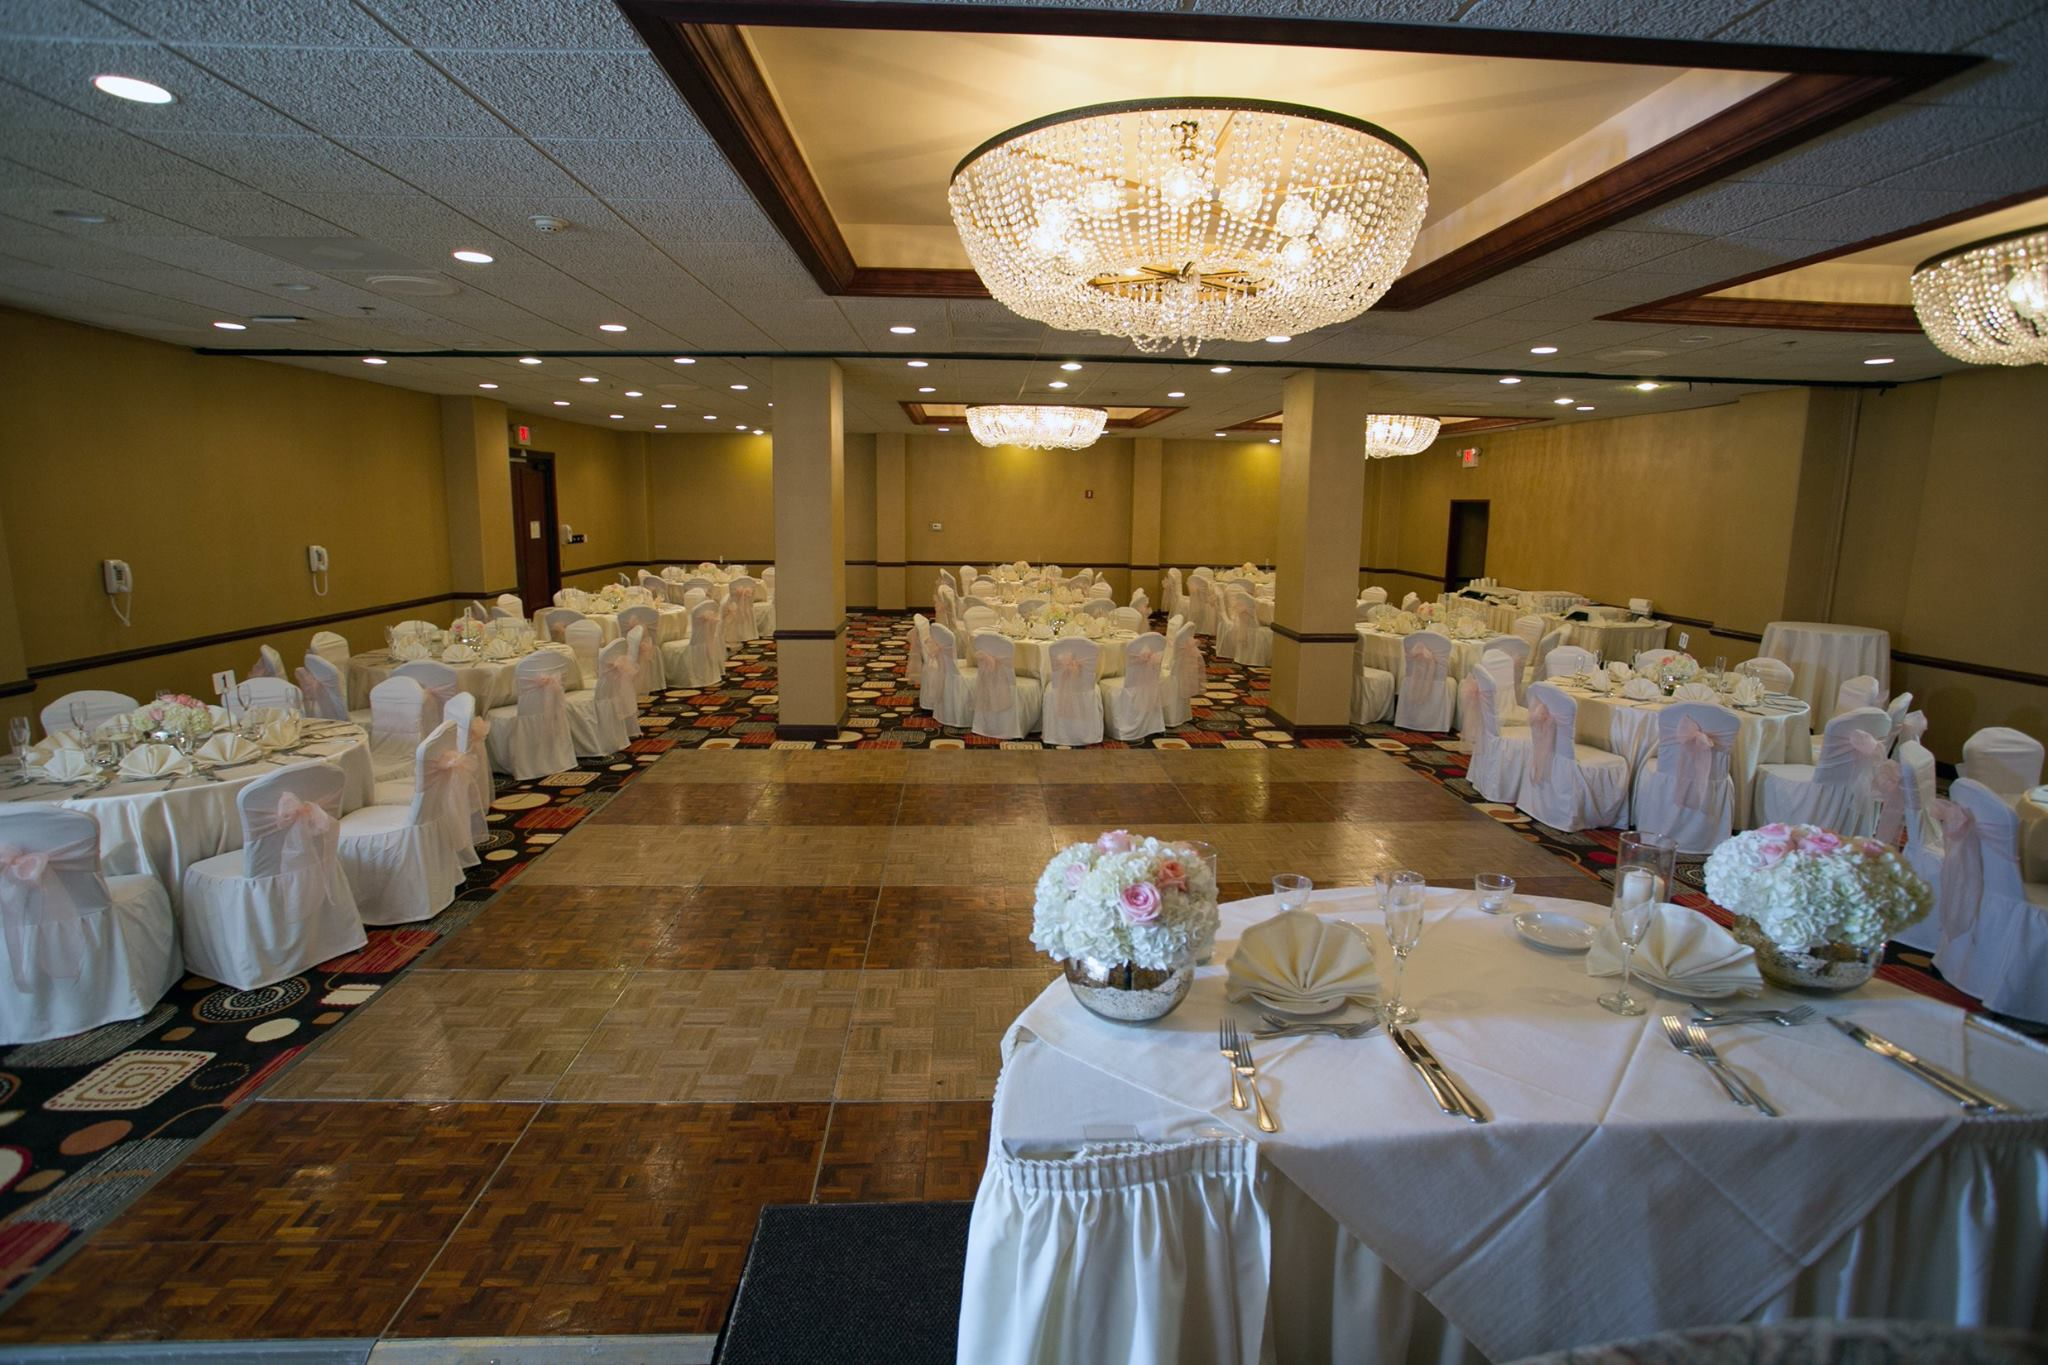 The Hotel Fullerton Event Space